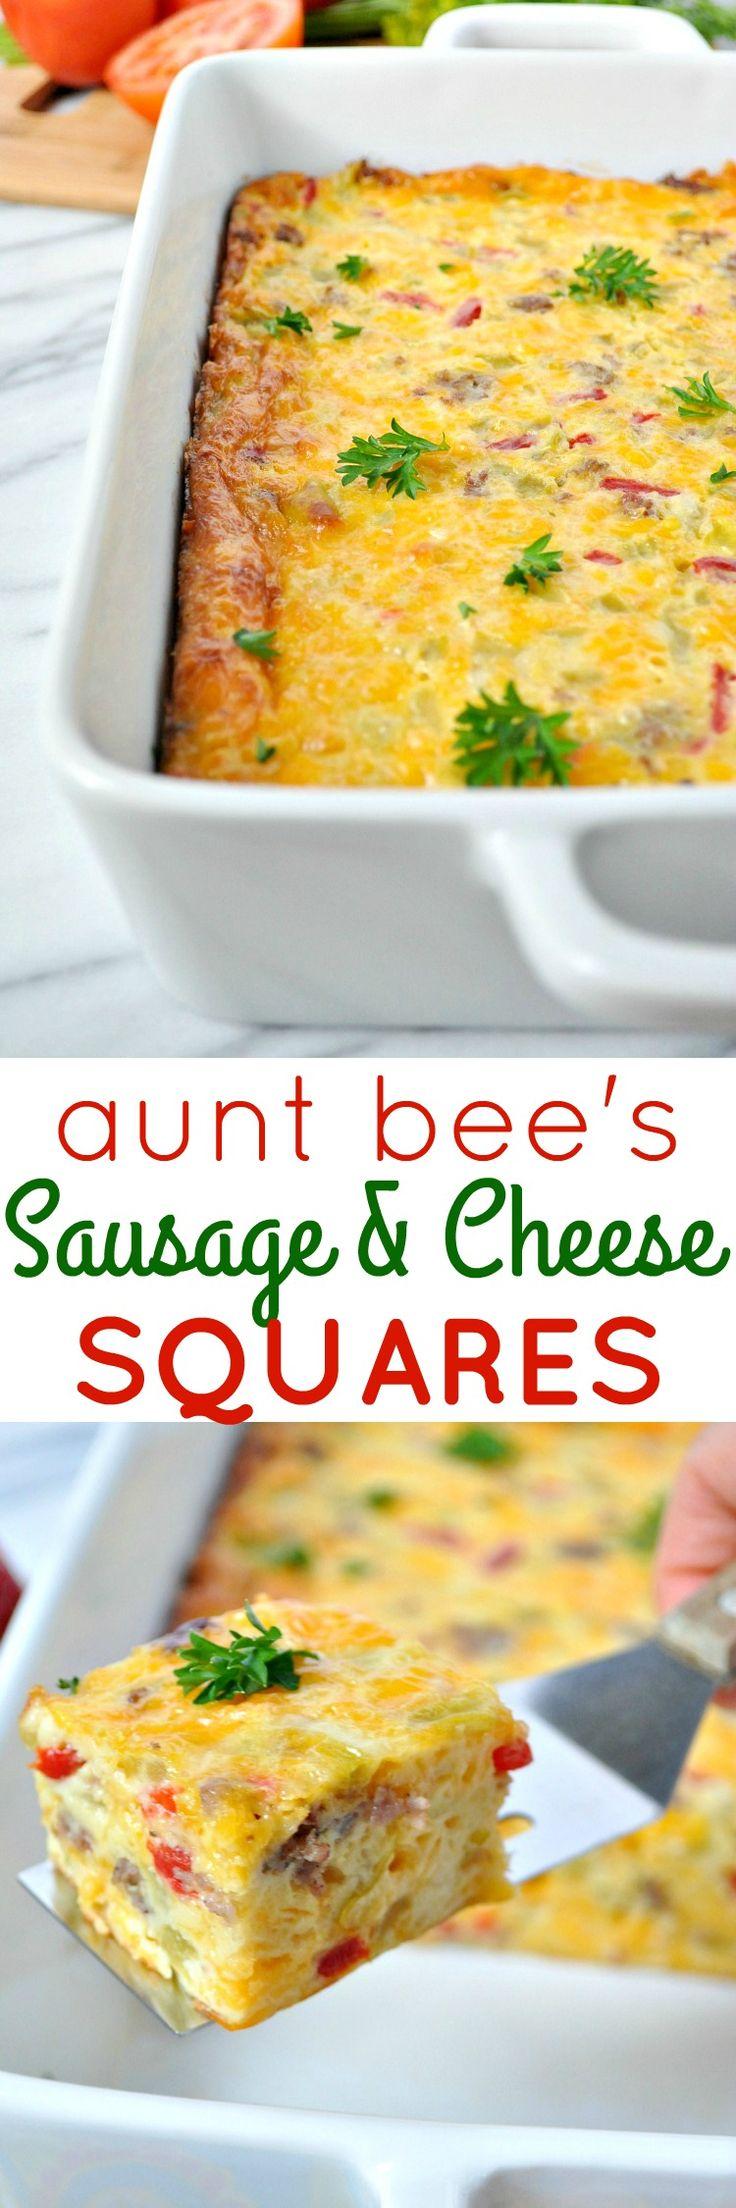 My great Aunt Bee has been hosting southern cocktail parties for years, and this is one of her all-time favorite appetizer recipes! Sausage and Cheese Squares are an easy, make-ahead finger food that's perfect for any occasion!